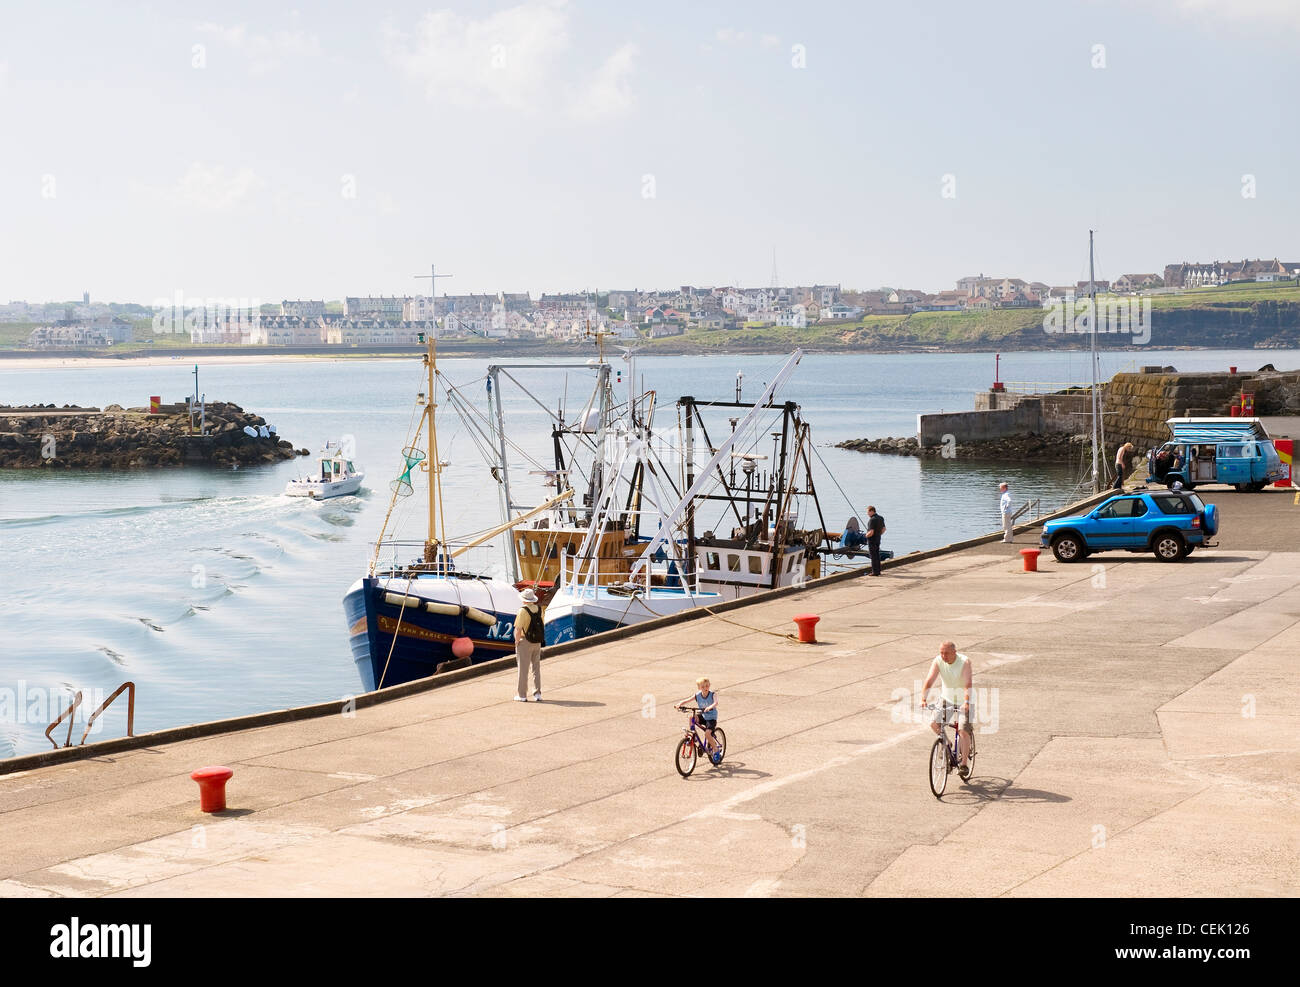 Fishing boats in the harbour at Portrush, County Antrim, Northern Ireland - Stock Image